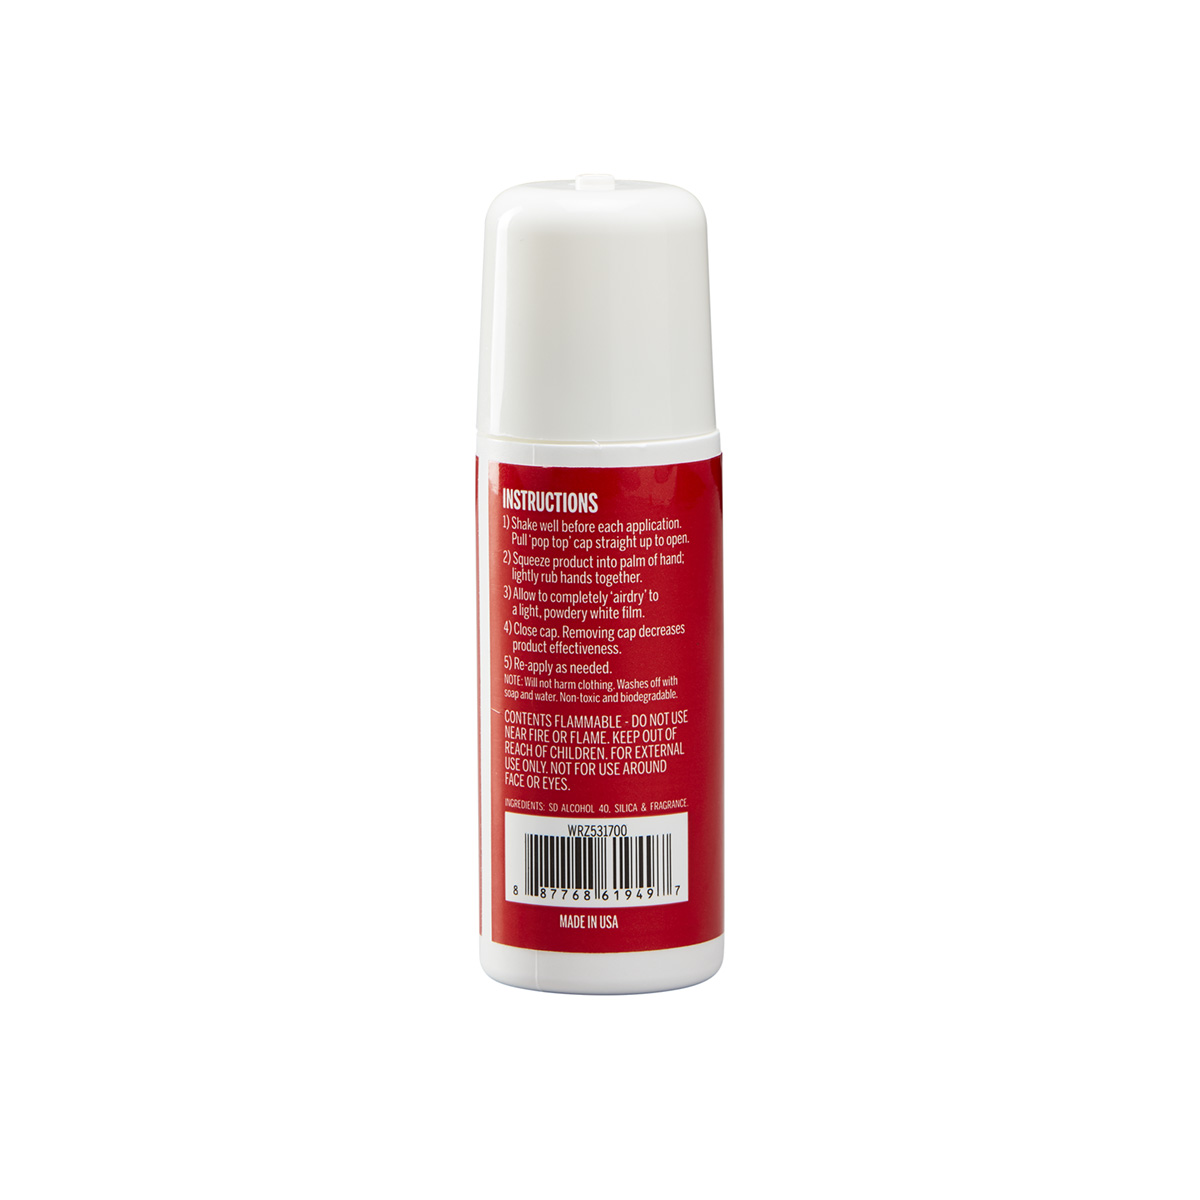 Non-sticky lotion evaporates within seconds – Keeps hands dry for improved grip